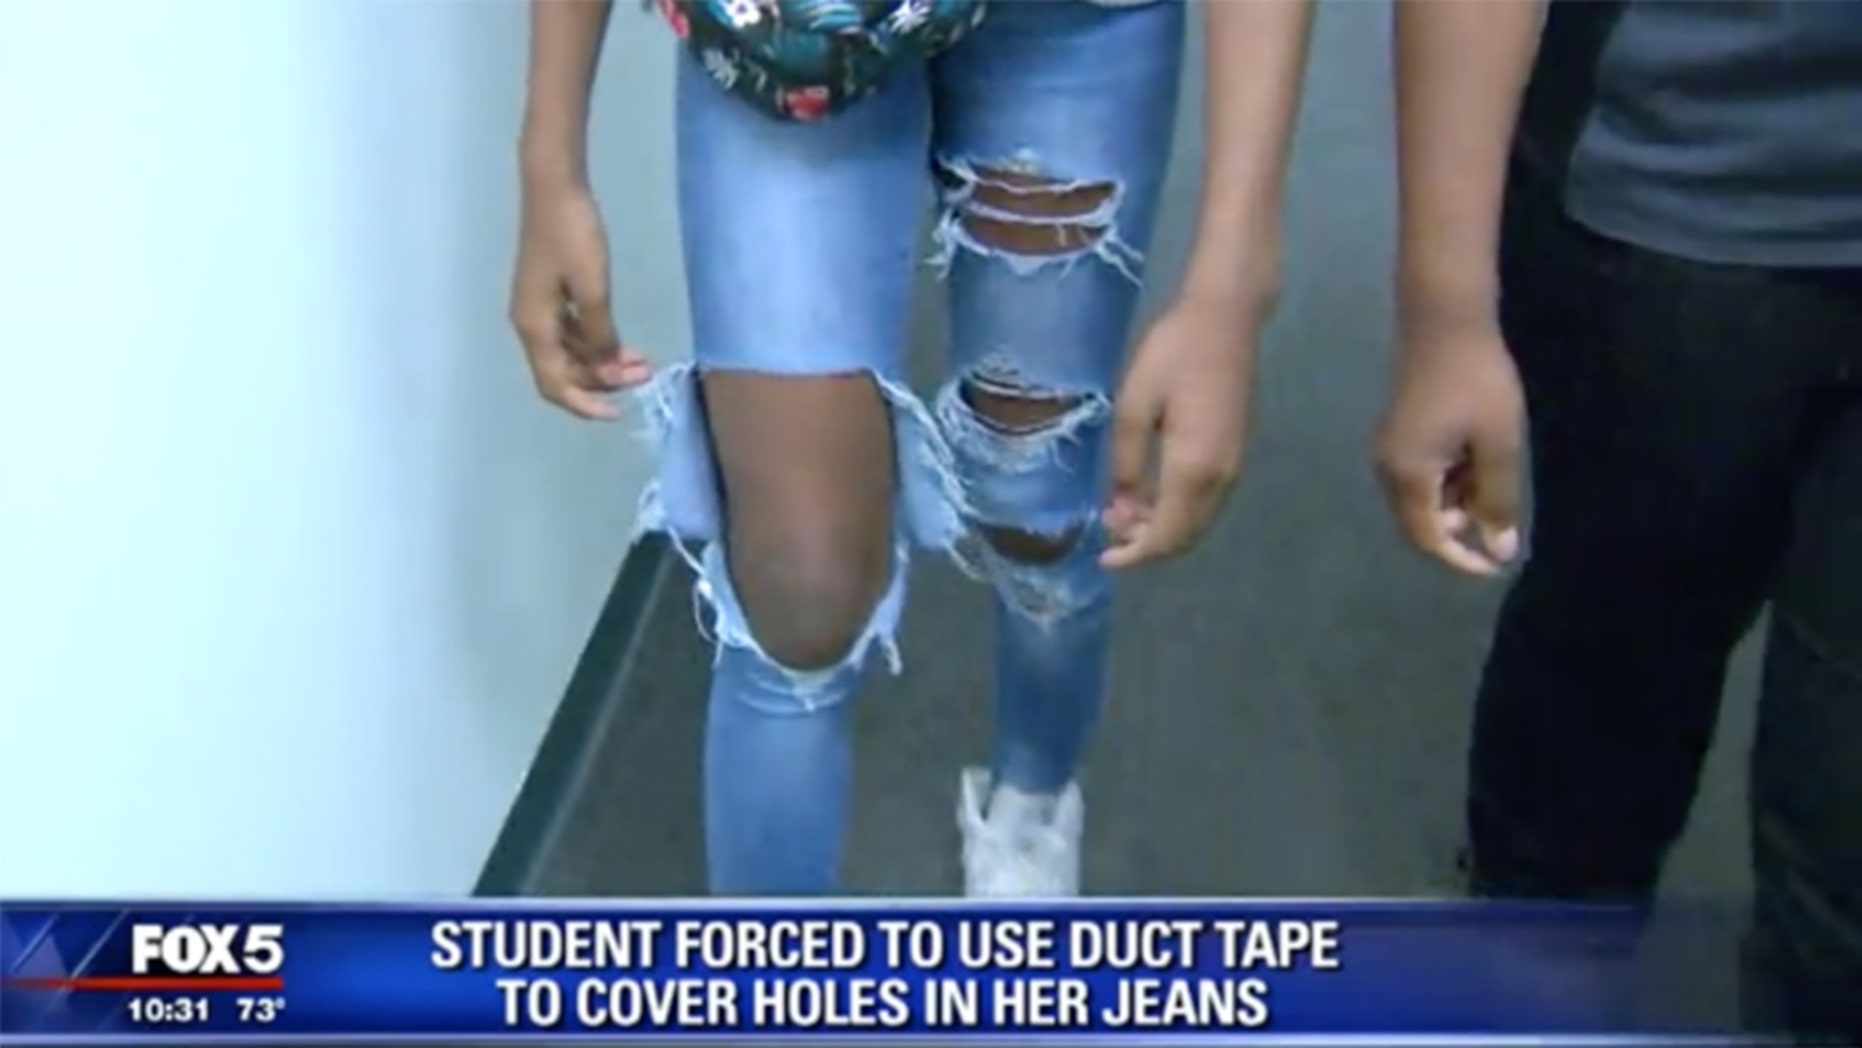 A teacher gave a seventh grade duct tape to cover the holes in her jeans, which violated the school's dress code.